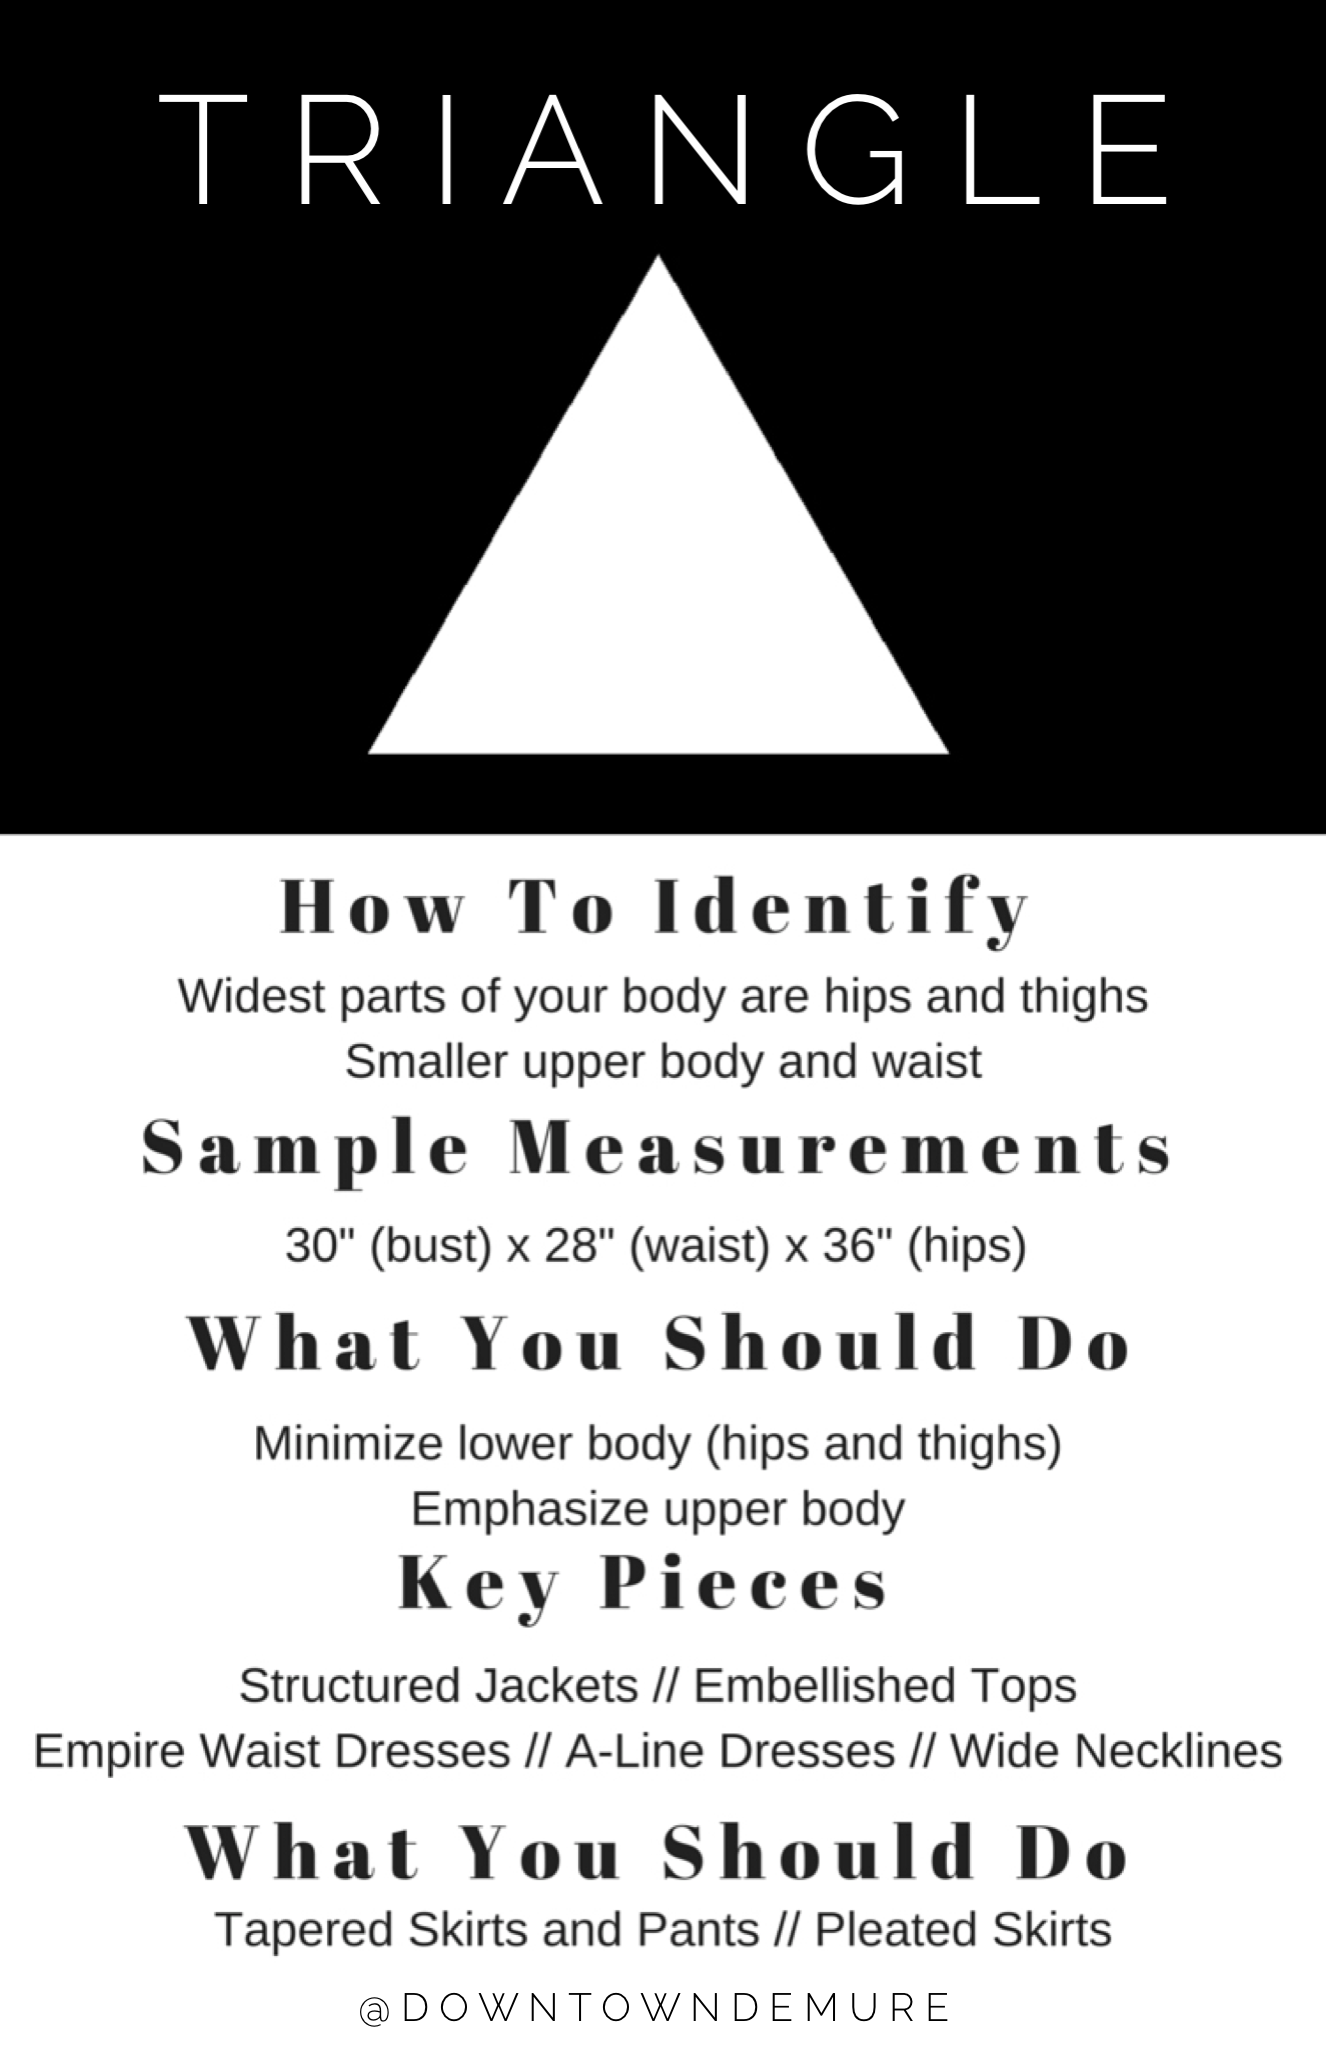 Style Tips for Women with Triangle Bodies